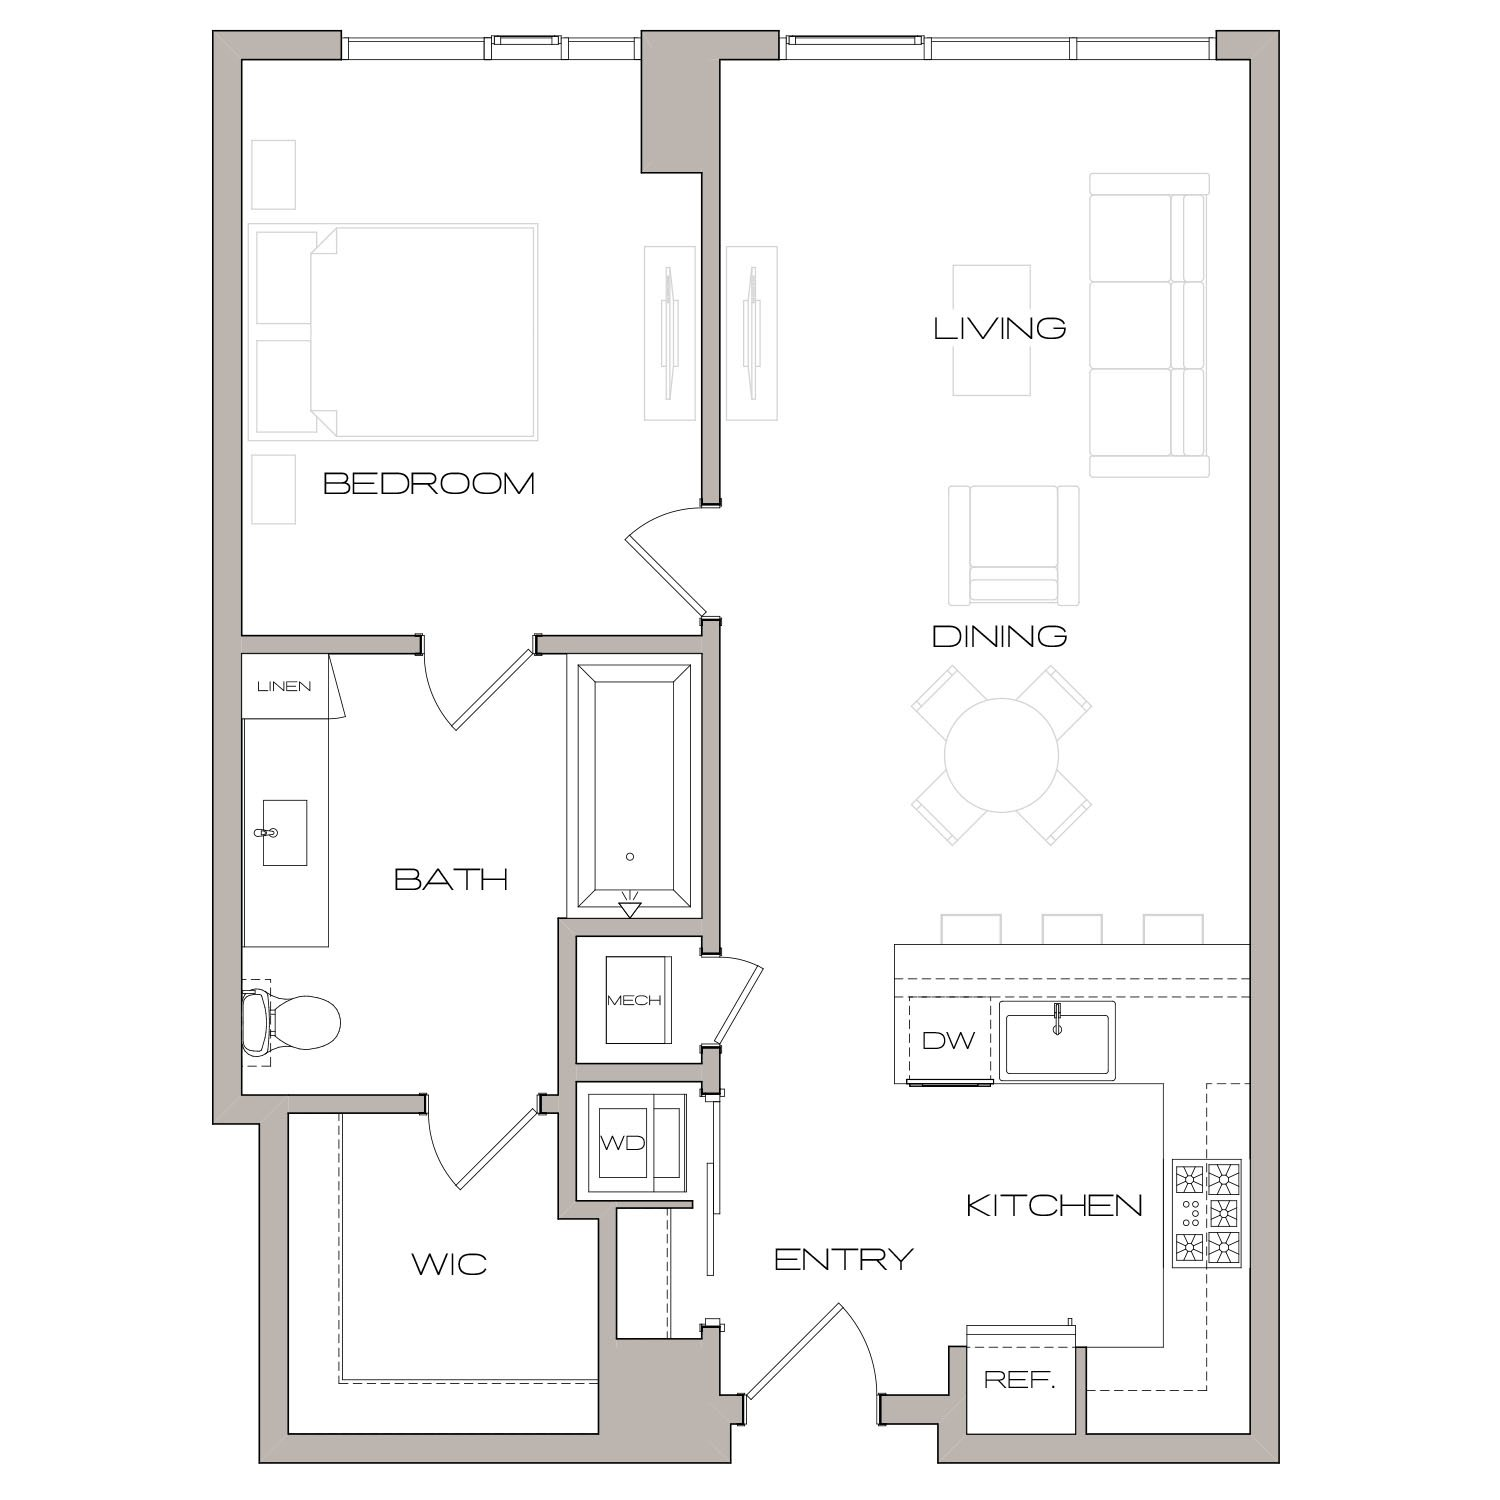 A 2 floor plan diagram. One bedroom, one bathroom, an open kitchen and living area, and a washer dryer.